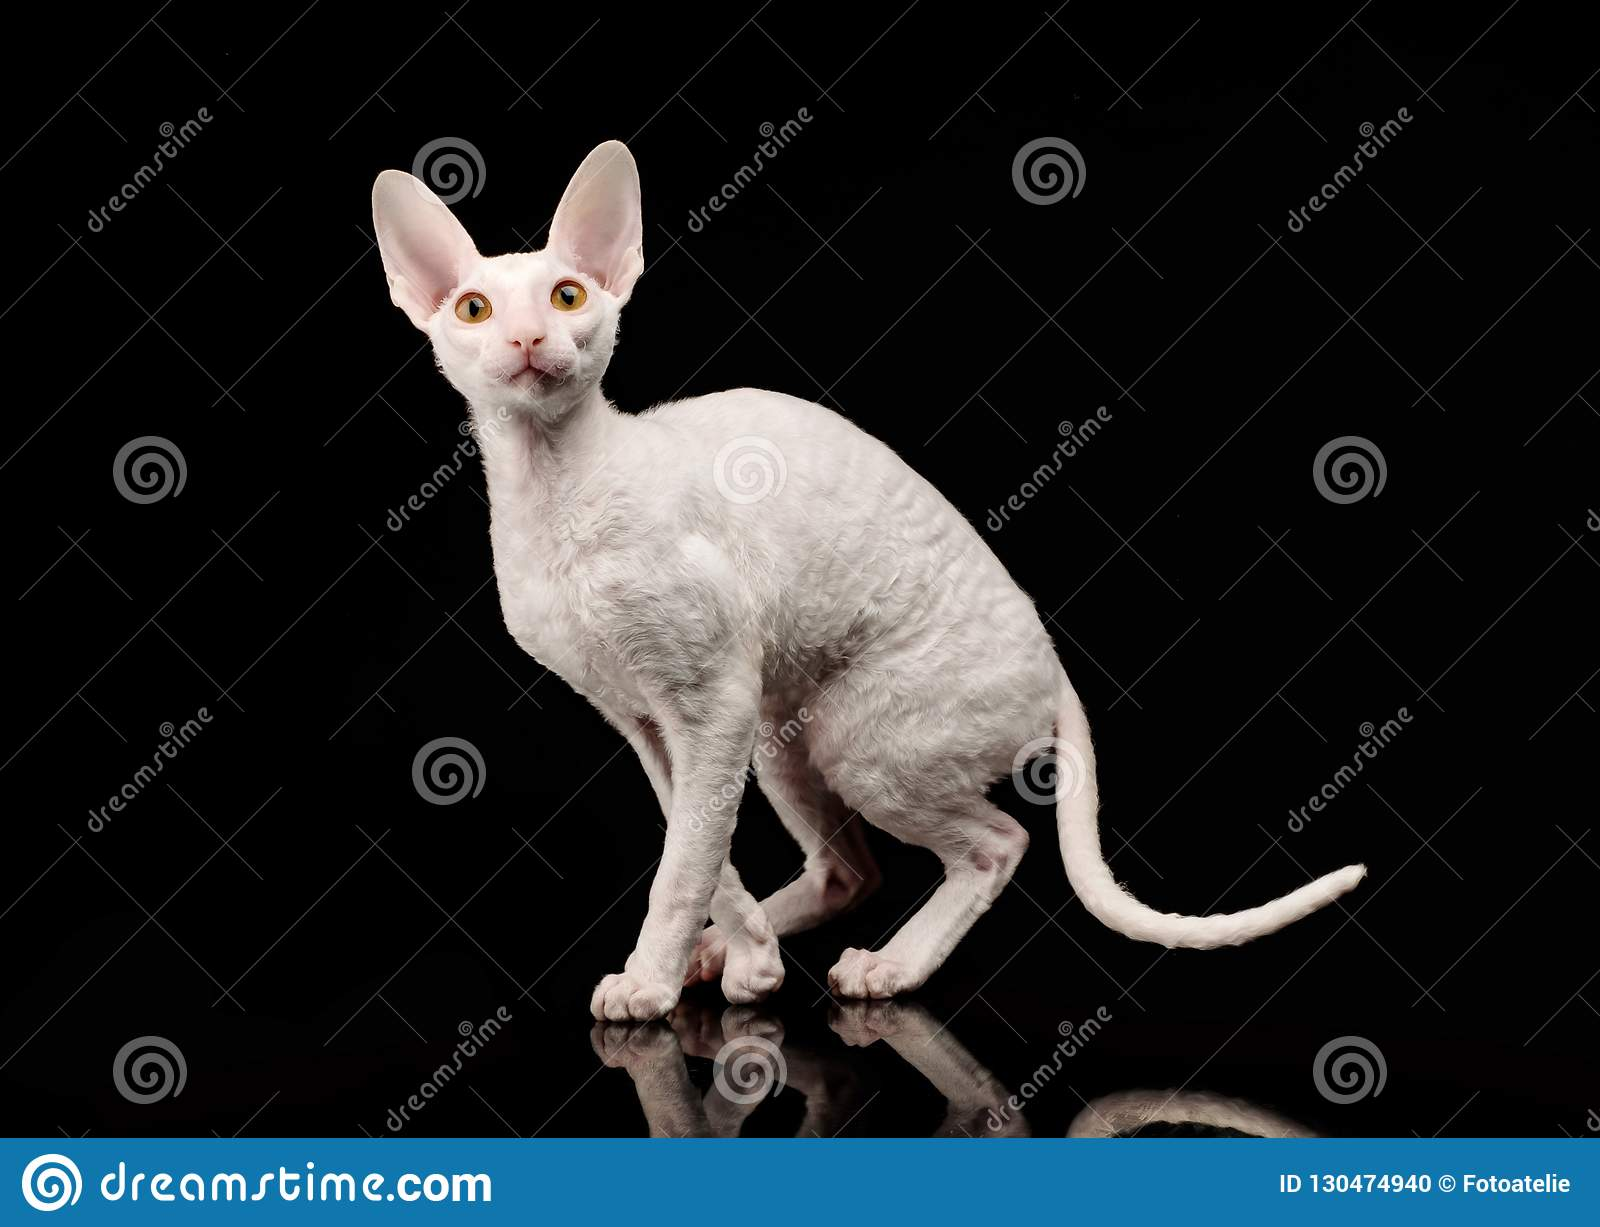 Thoroughbred White Cornish Rex Cat on black background.